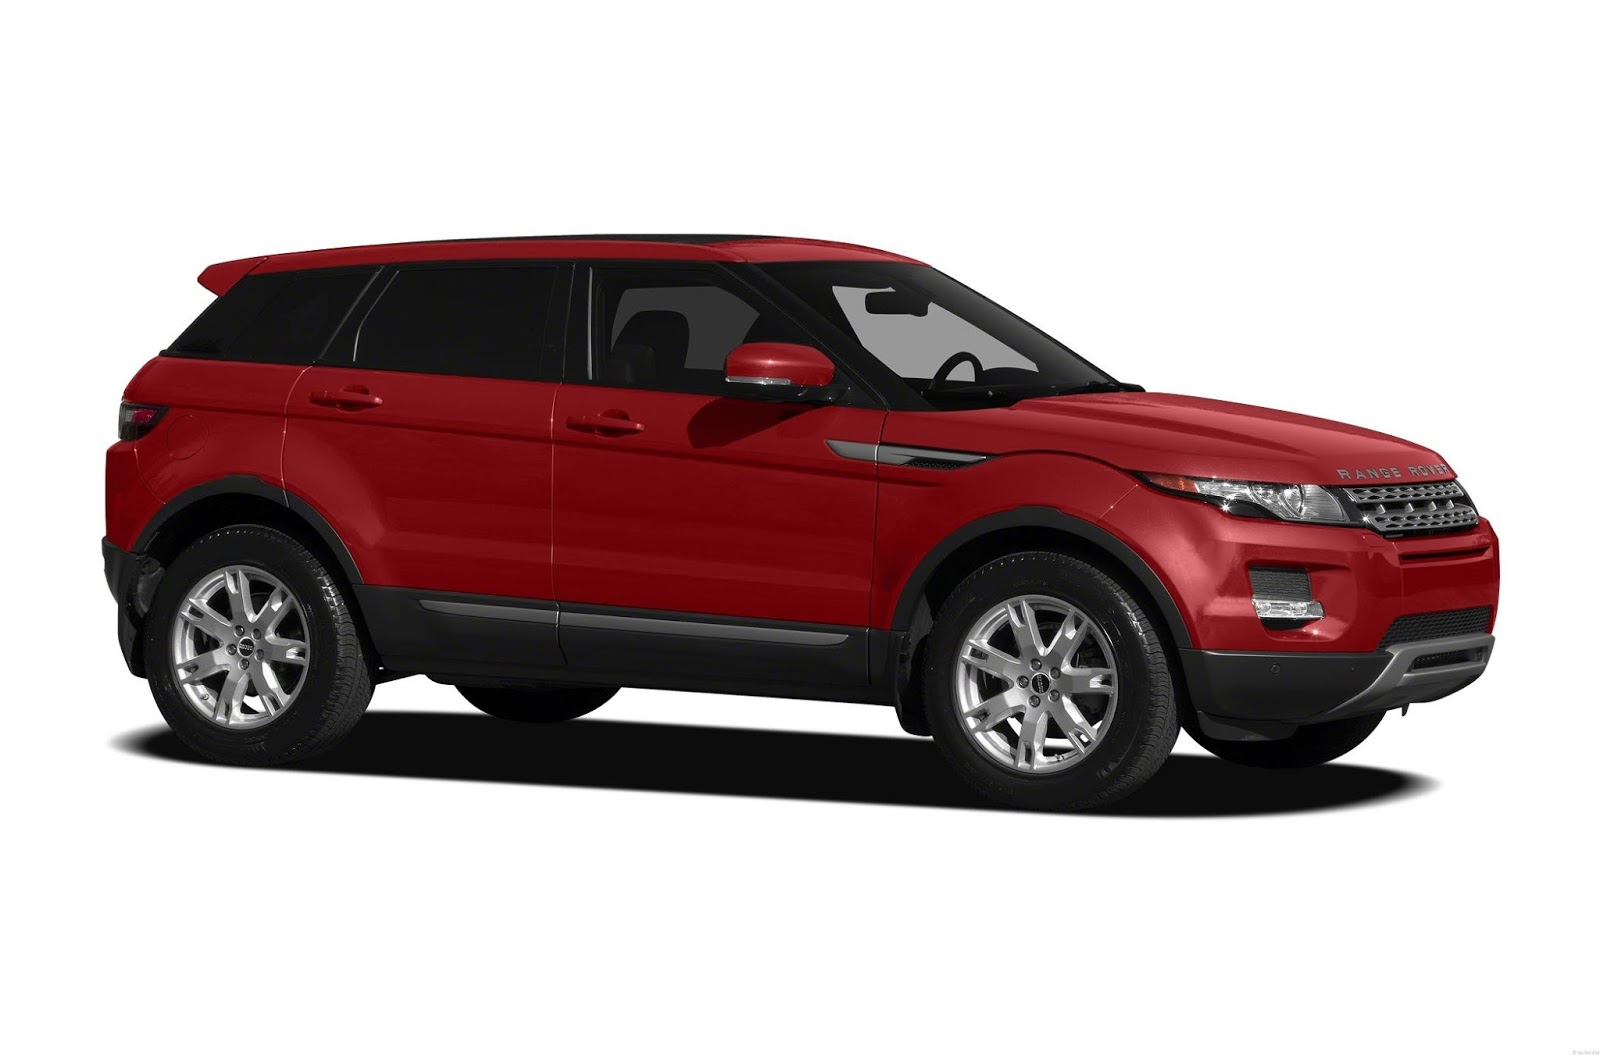 land rover range rover evoque pure suv spy photos wallpaper specification prices review. Black Bedroom Furniture Sets. Home Design Ideas